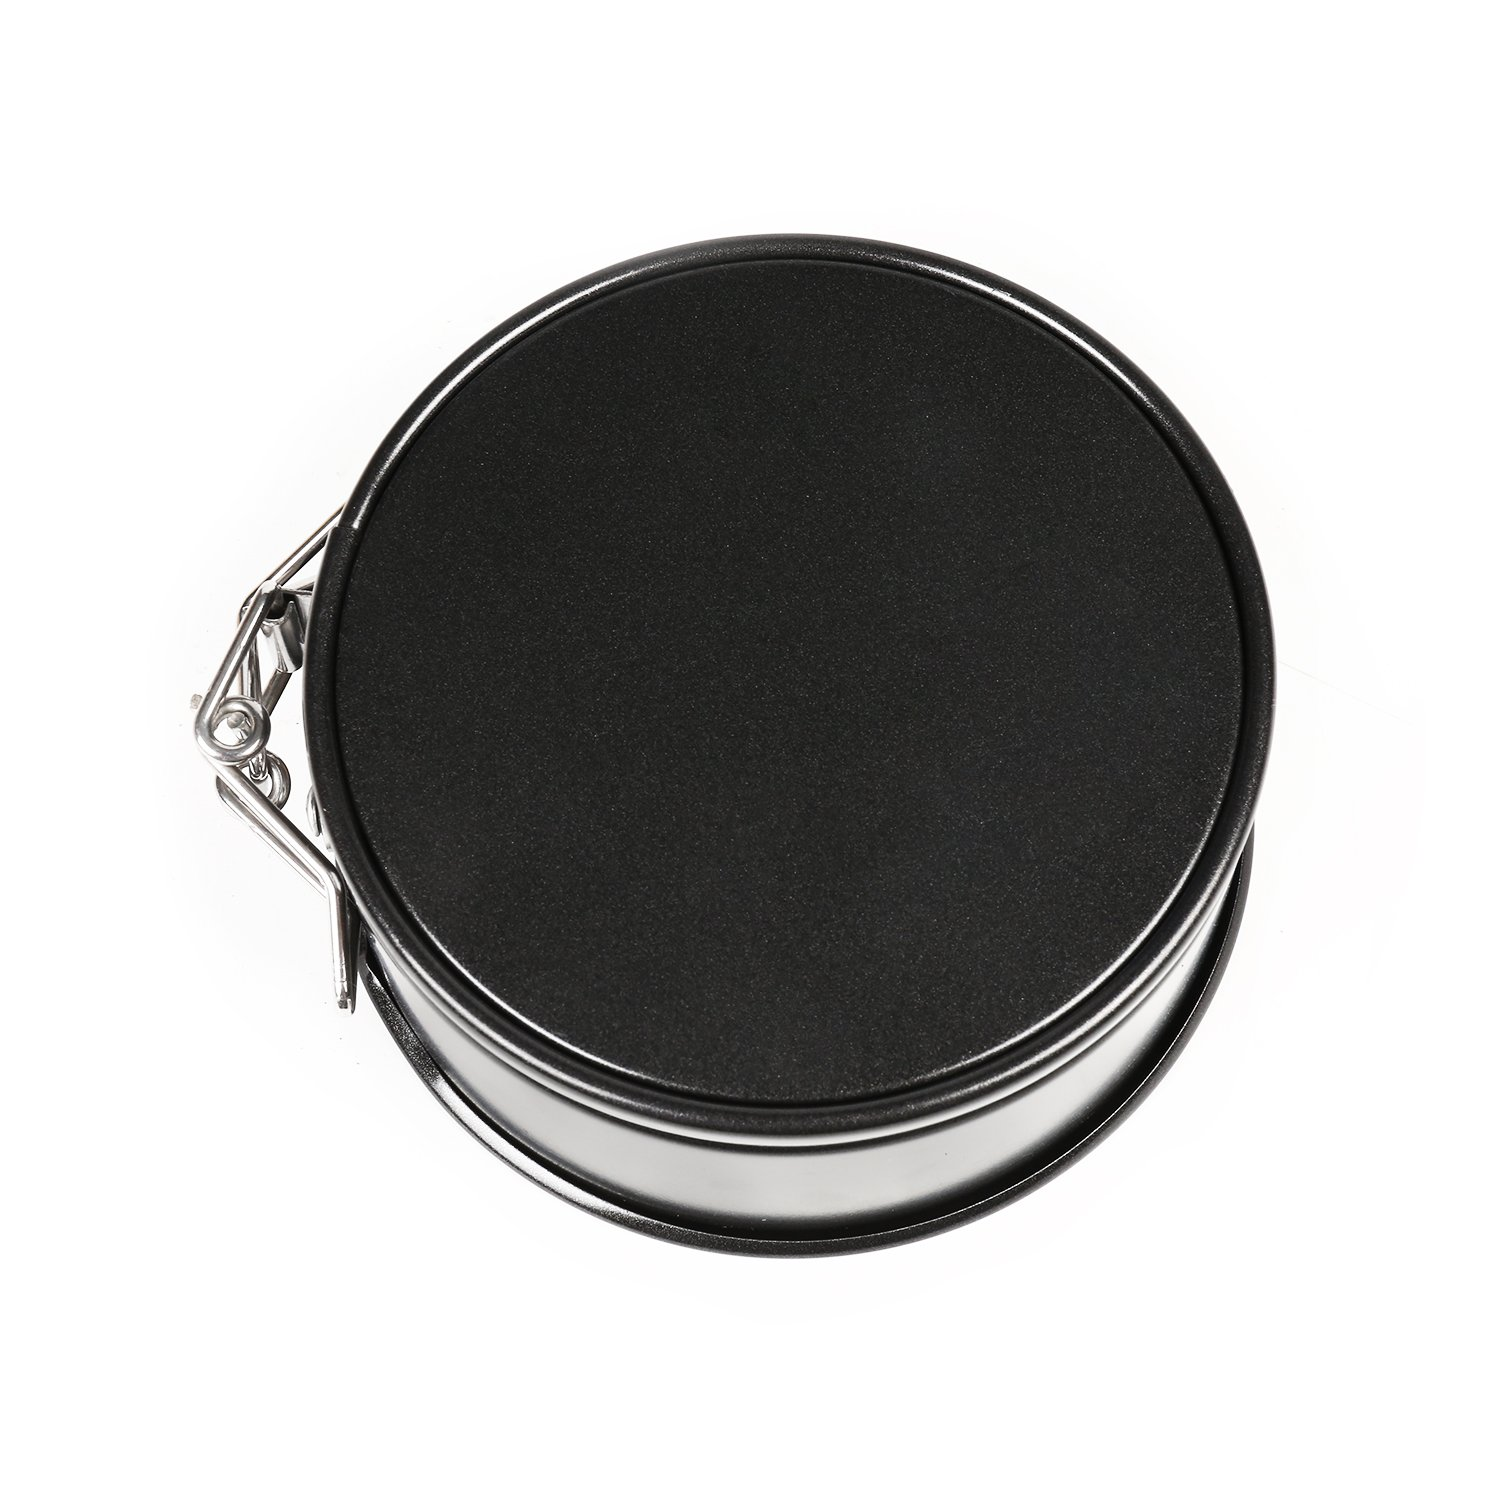 AFYHA 4 Inch Mini Non-stick Springform Pans Set 4 Piece Small Round Leakproof Cheesecake Pans with Removable Bottom for Mini Cheesecakes Pizzas and Quiches CFL-ZL126